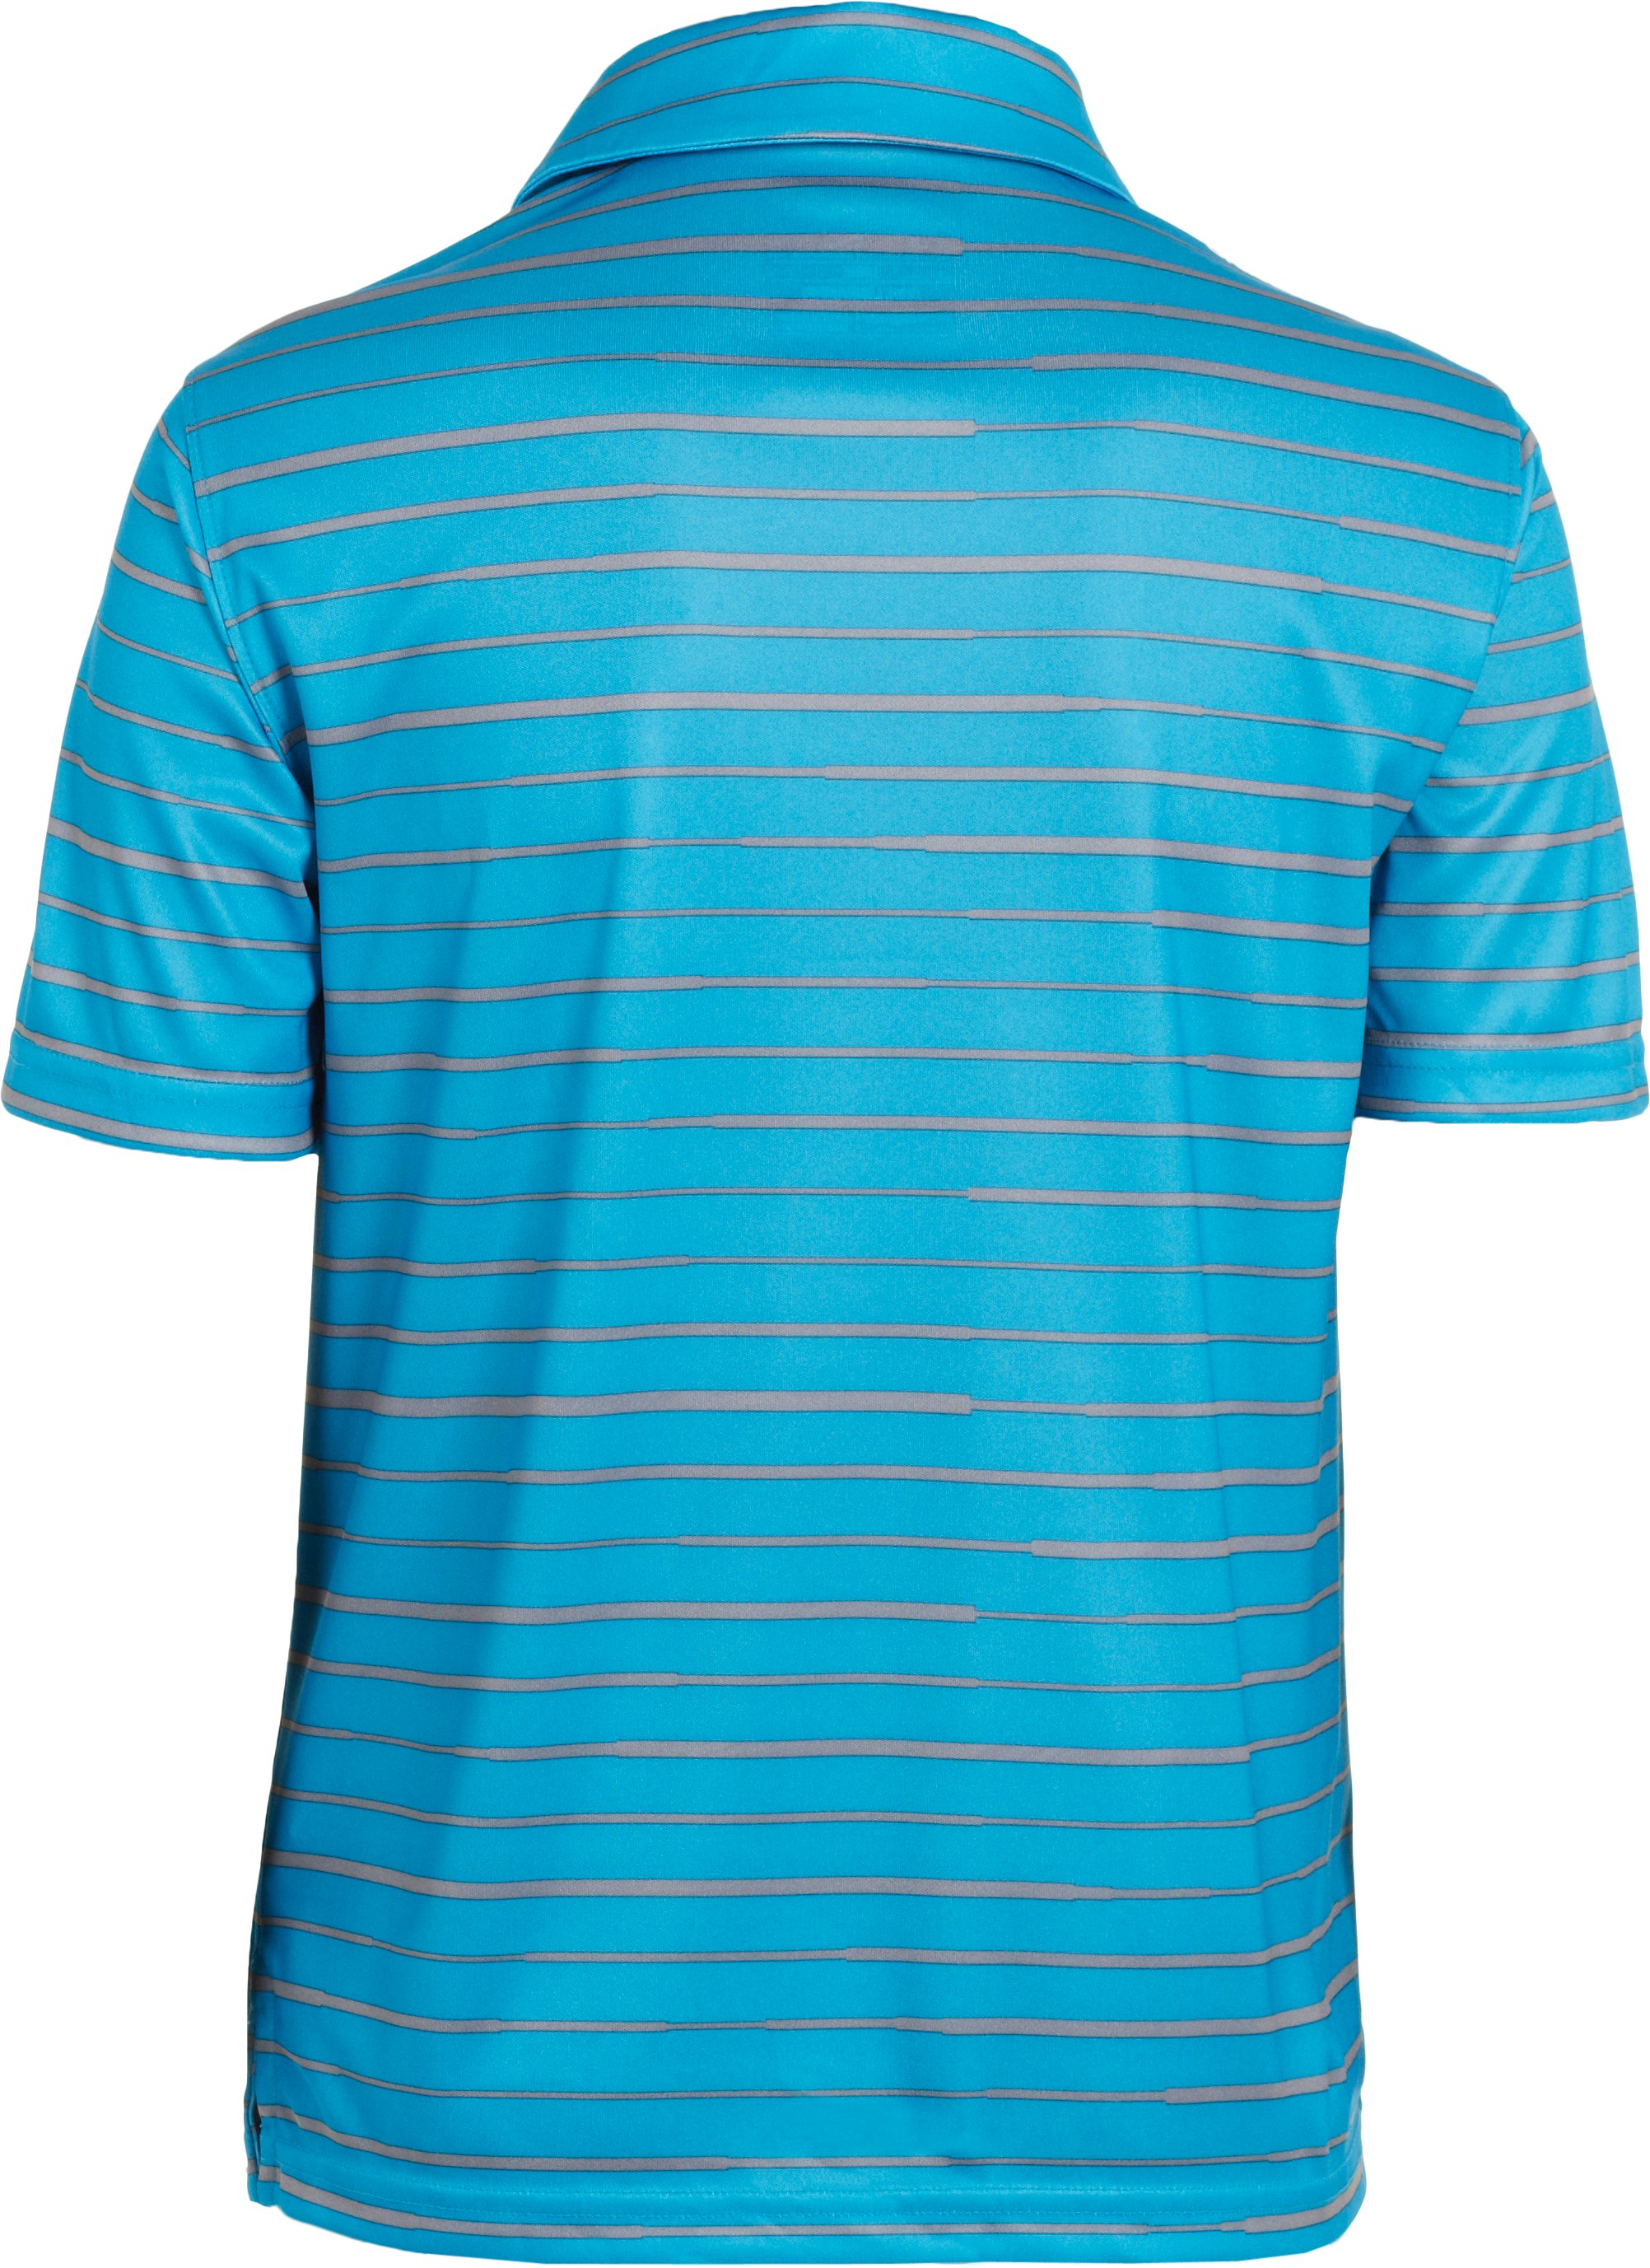 Boys' UA Seismic Strip Polo, PIRATE BLUE